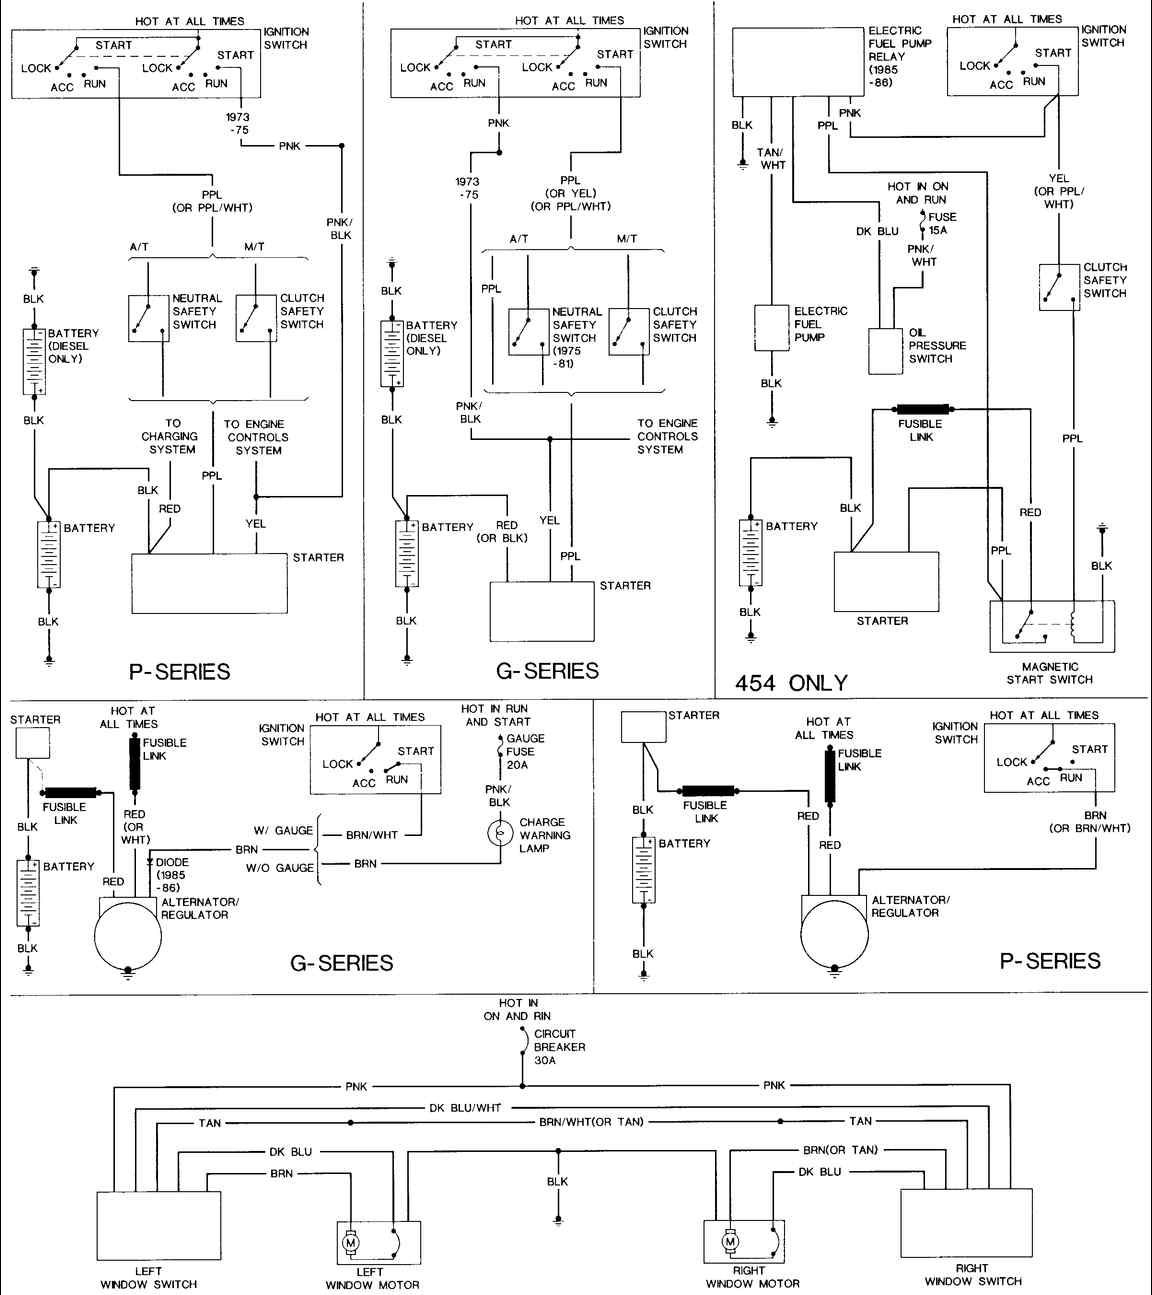 1980 Chevy Truck Wiring Diagram Opinions About Luv Tail Light Images Gallery